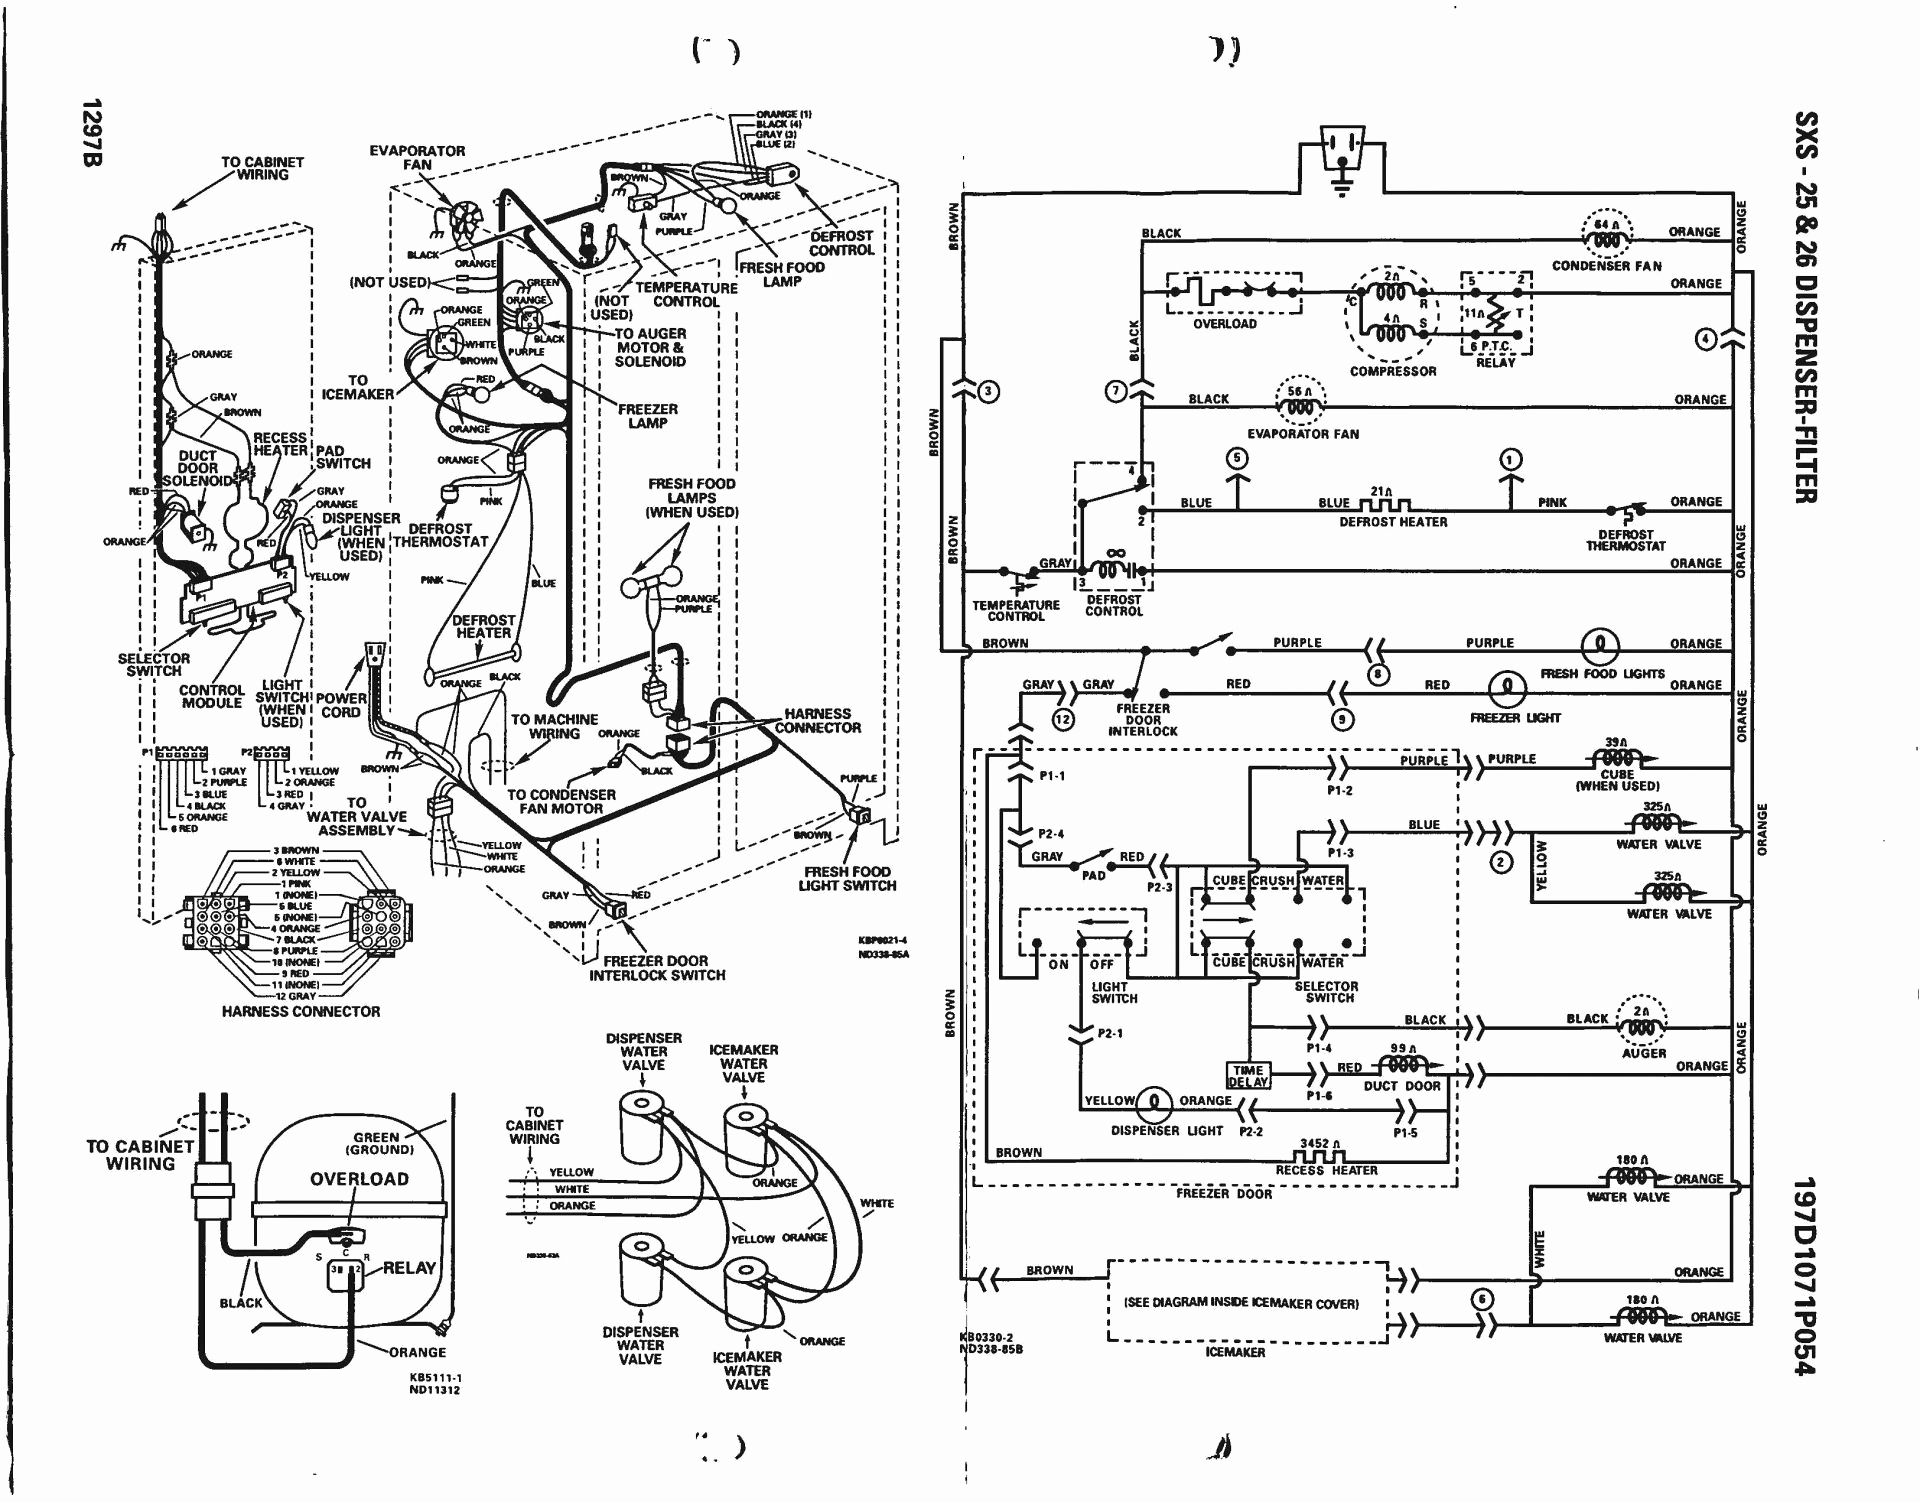 Grote Lights Wiring Diagram | Manual E-Books - Grote Trailer Wiring Diagram